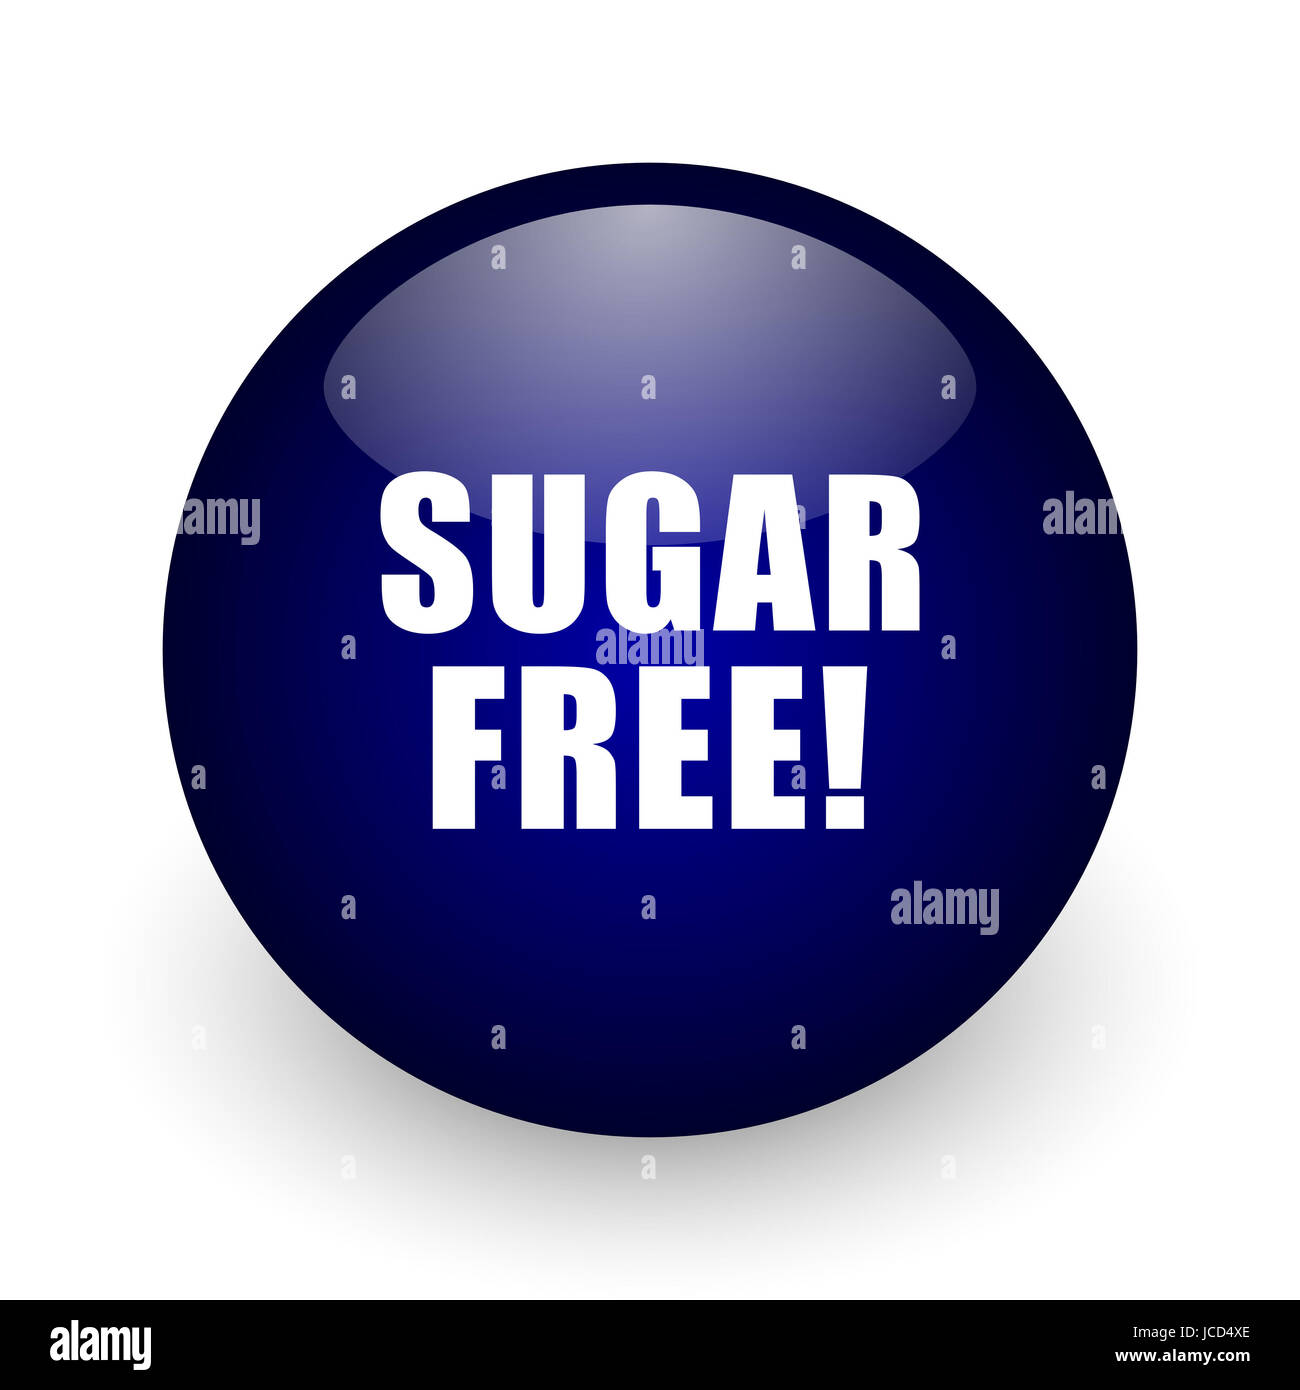 Sugar free blue glossy ball web icon on white background. Round 3d render button. Stock Photo